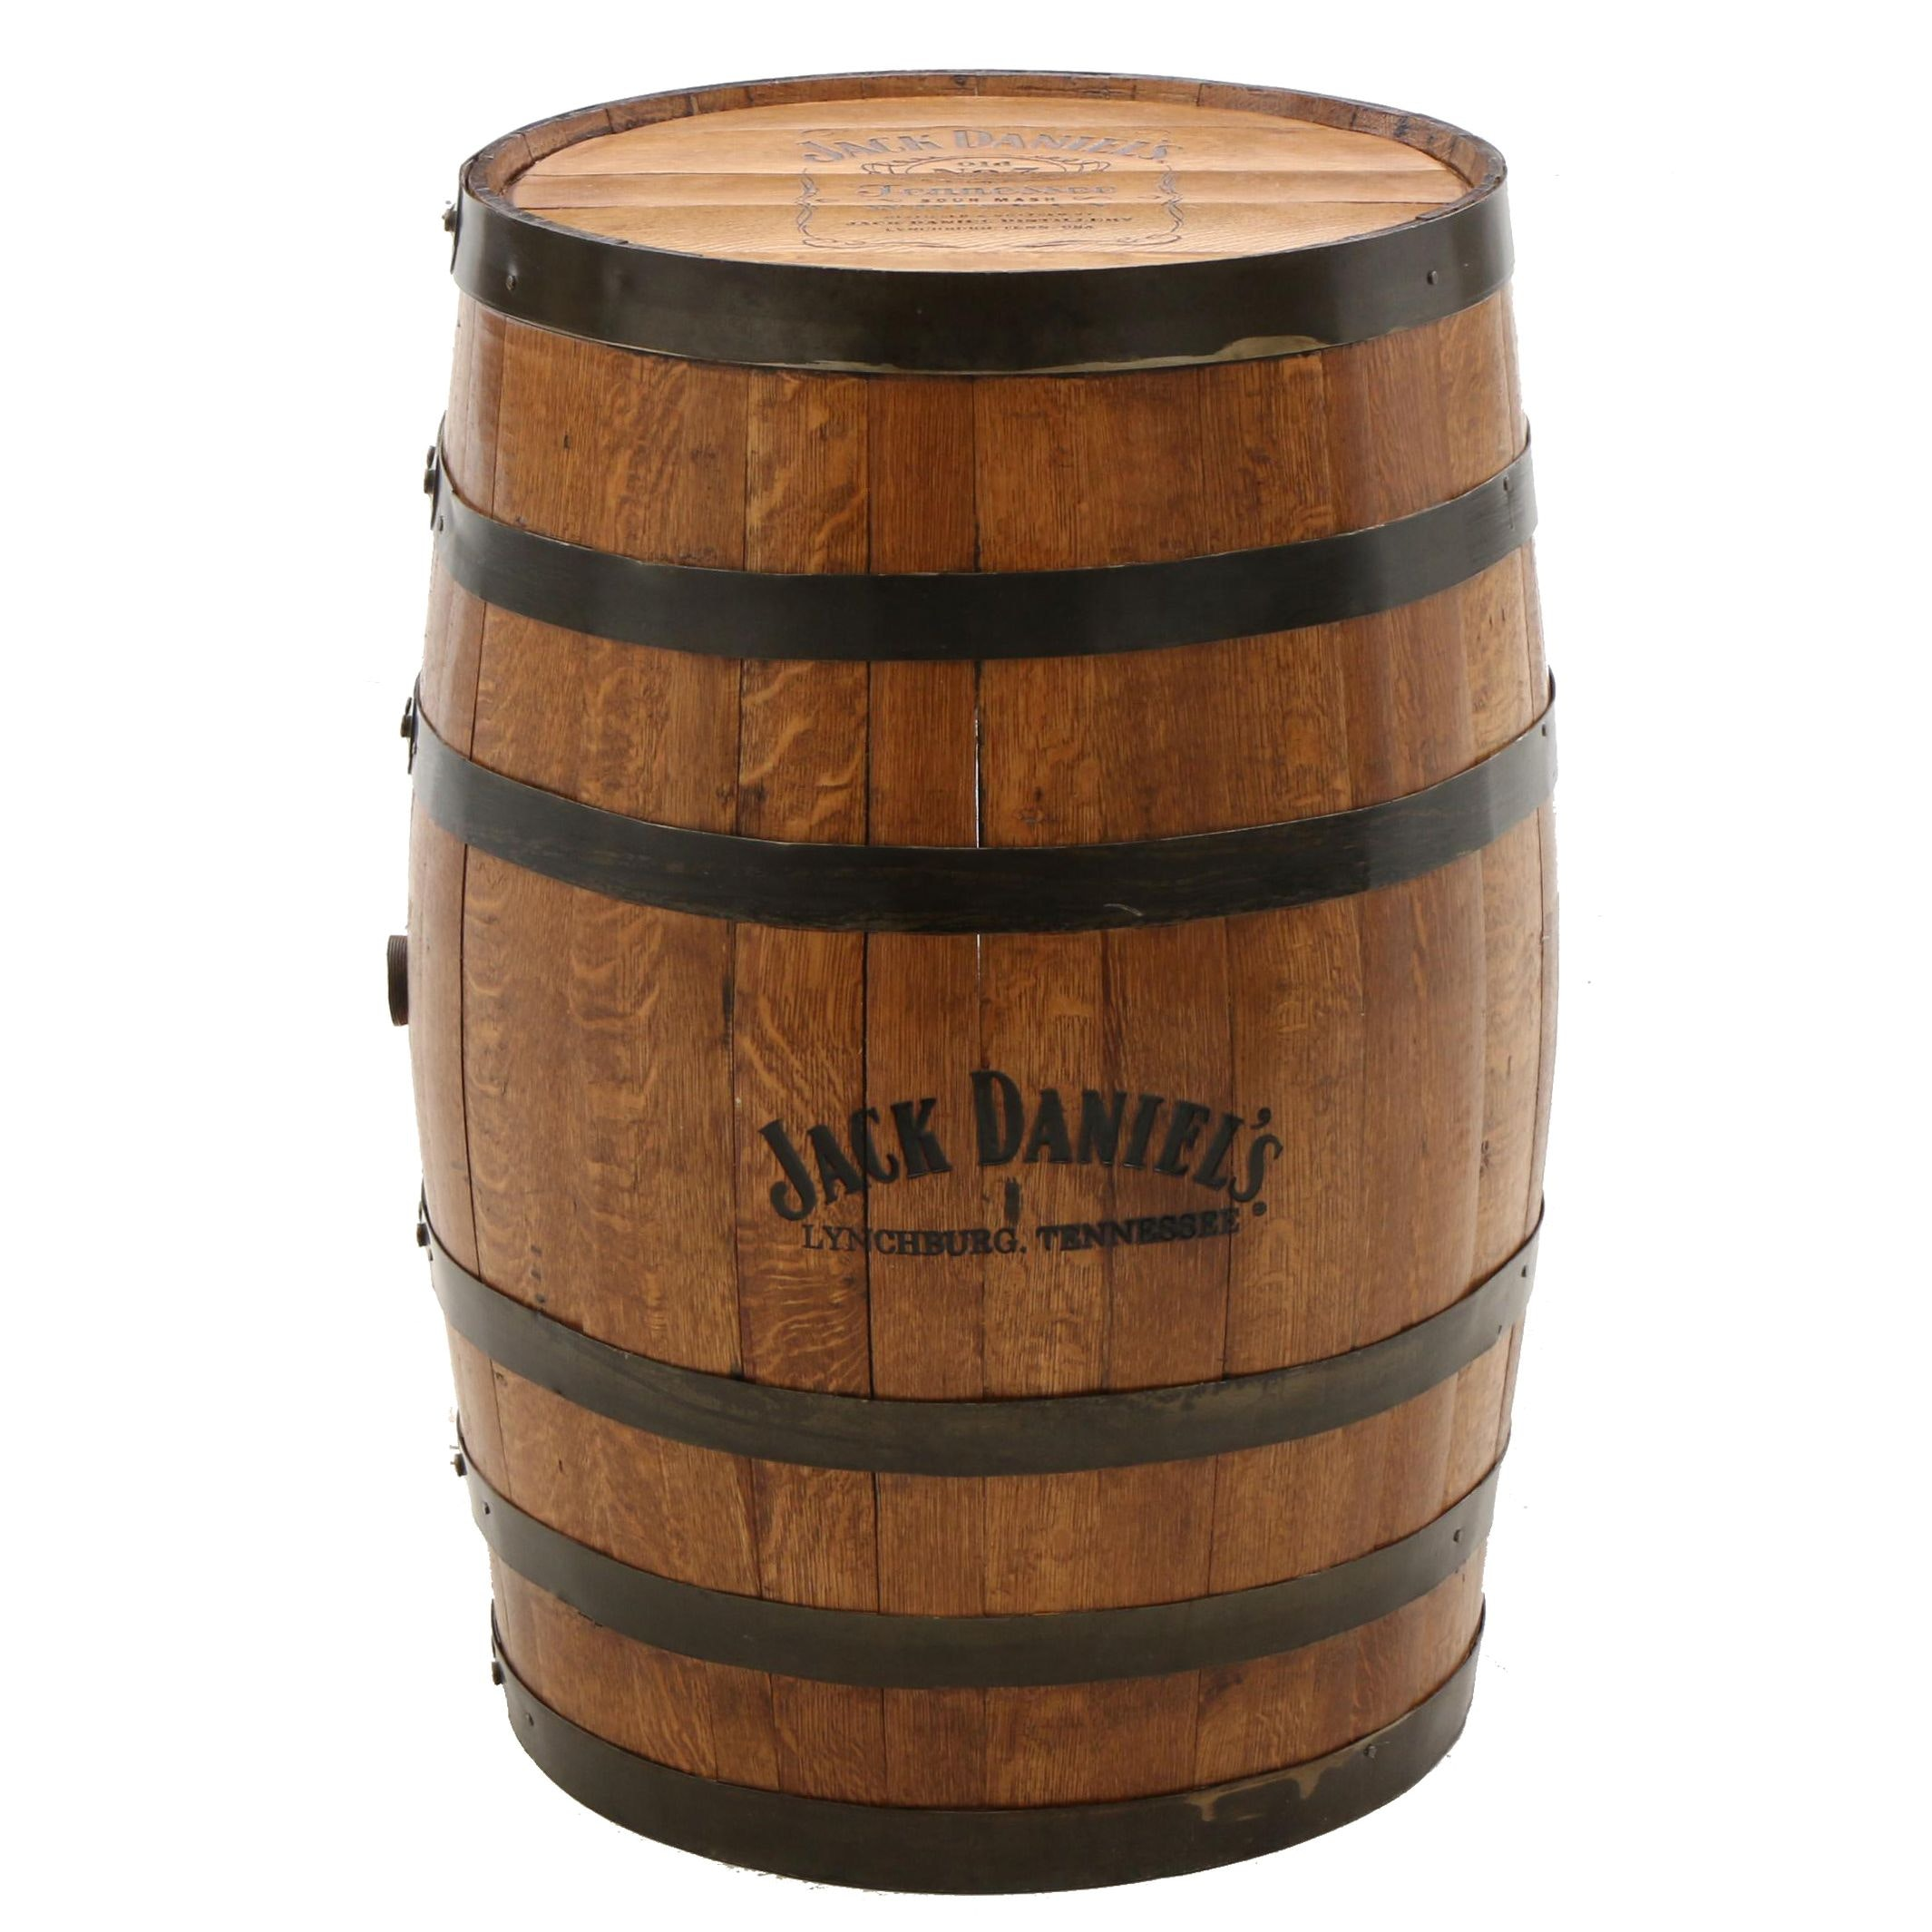 Jack Daniels Old No. 7 Tennessee Oak Whiskey Barrel